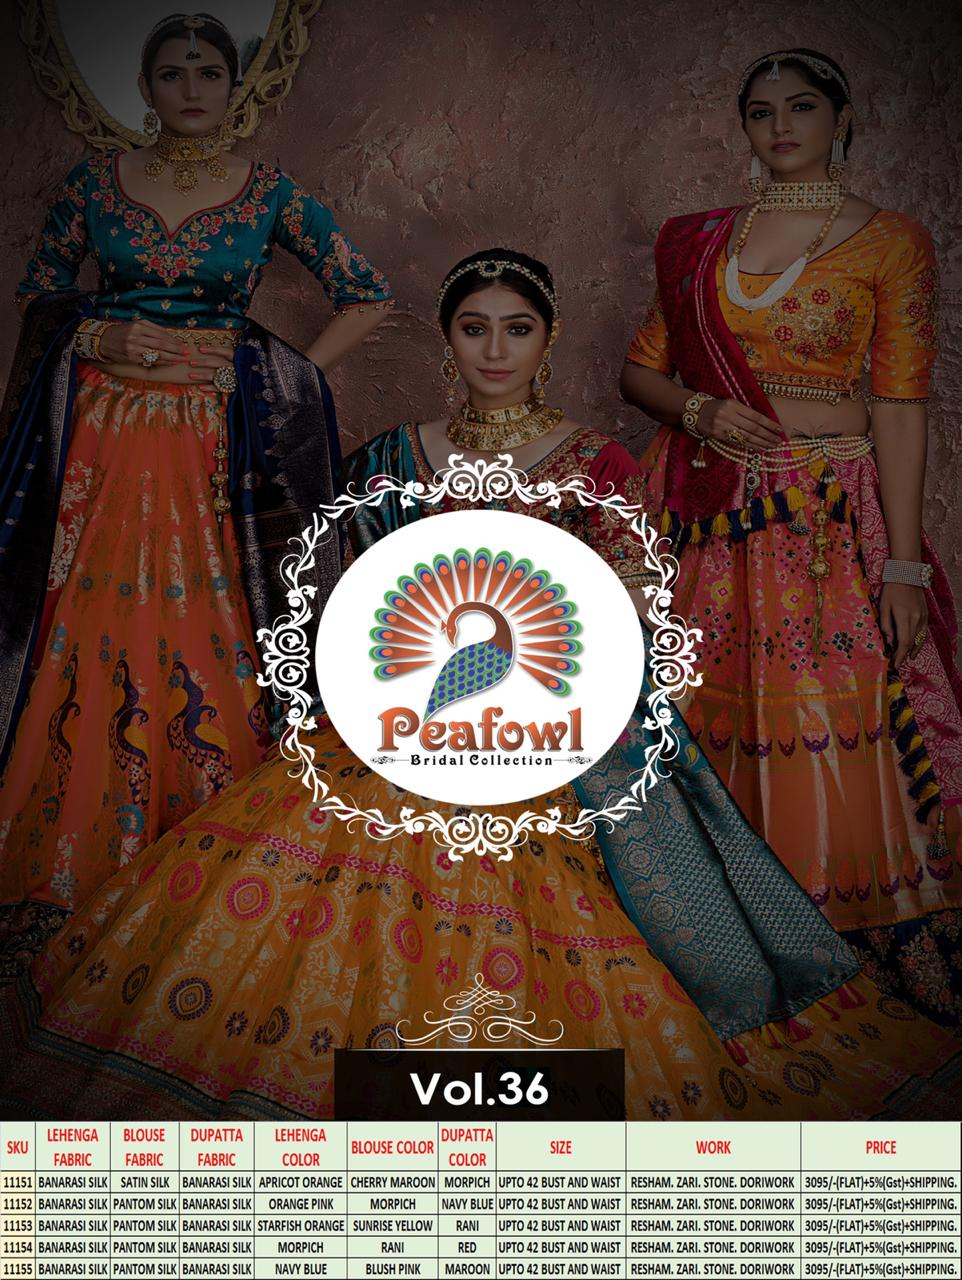 Peafowl Vol 36 collection 4